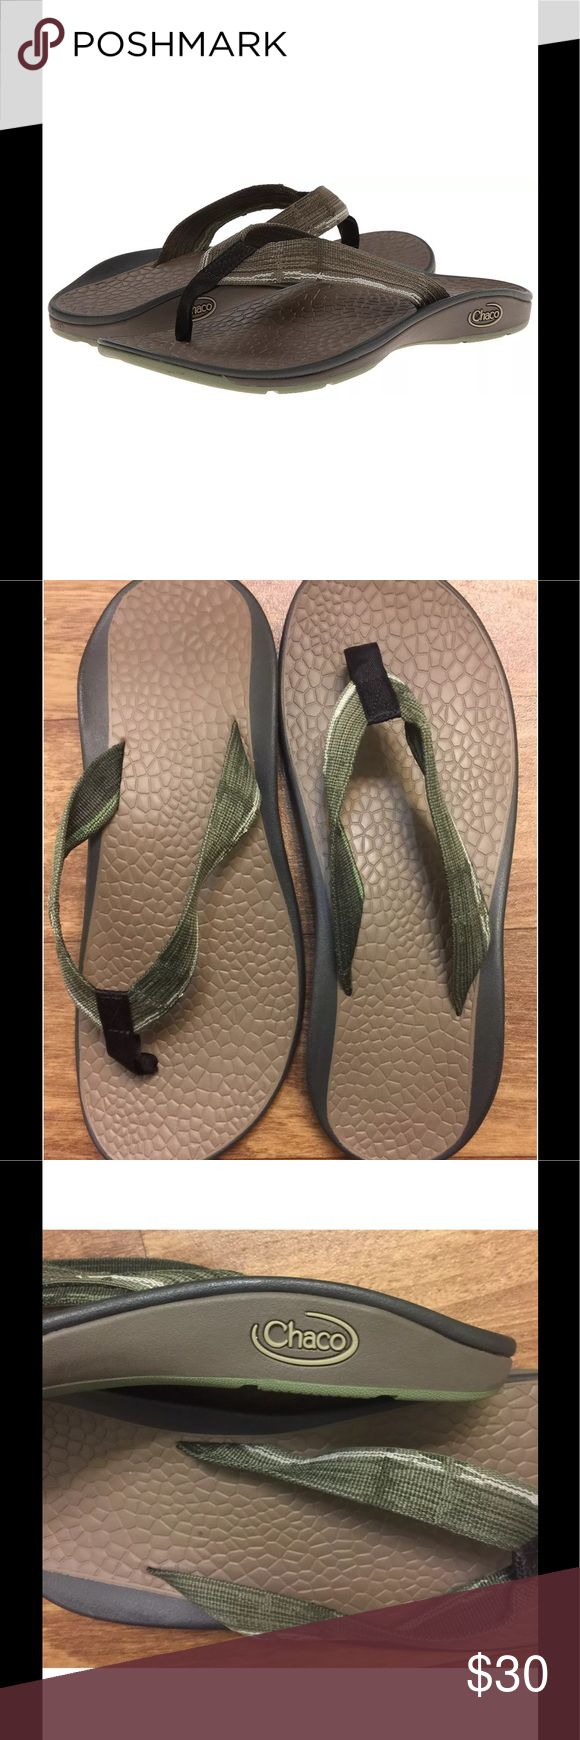 NWOT Chaco Size 14 Men's Fathom Flip Flops Sandals NWOT Chaco Size 14 Men's Fathom Flip Flops Sandal Seeing Green Gray Eco Tread   Rubber sole Flip-flop featuring water-friendly webbing strap and logo at side heel Luvseat polyurethane footbed with slip-resistant diamond pattern Non-marking EcoTread outsole with 25% recycled rubber New without box or tag - never been worn - in perfect condition Original retail price $94.95 Chaco Shoes Sandals & Flip-Flops